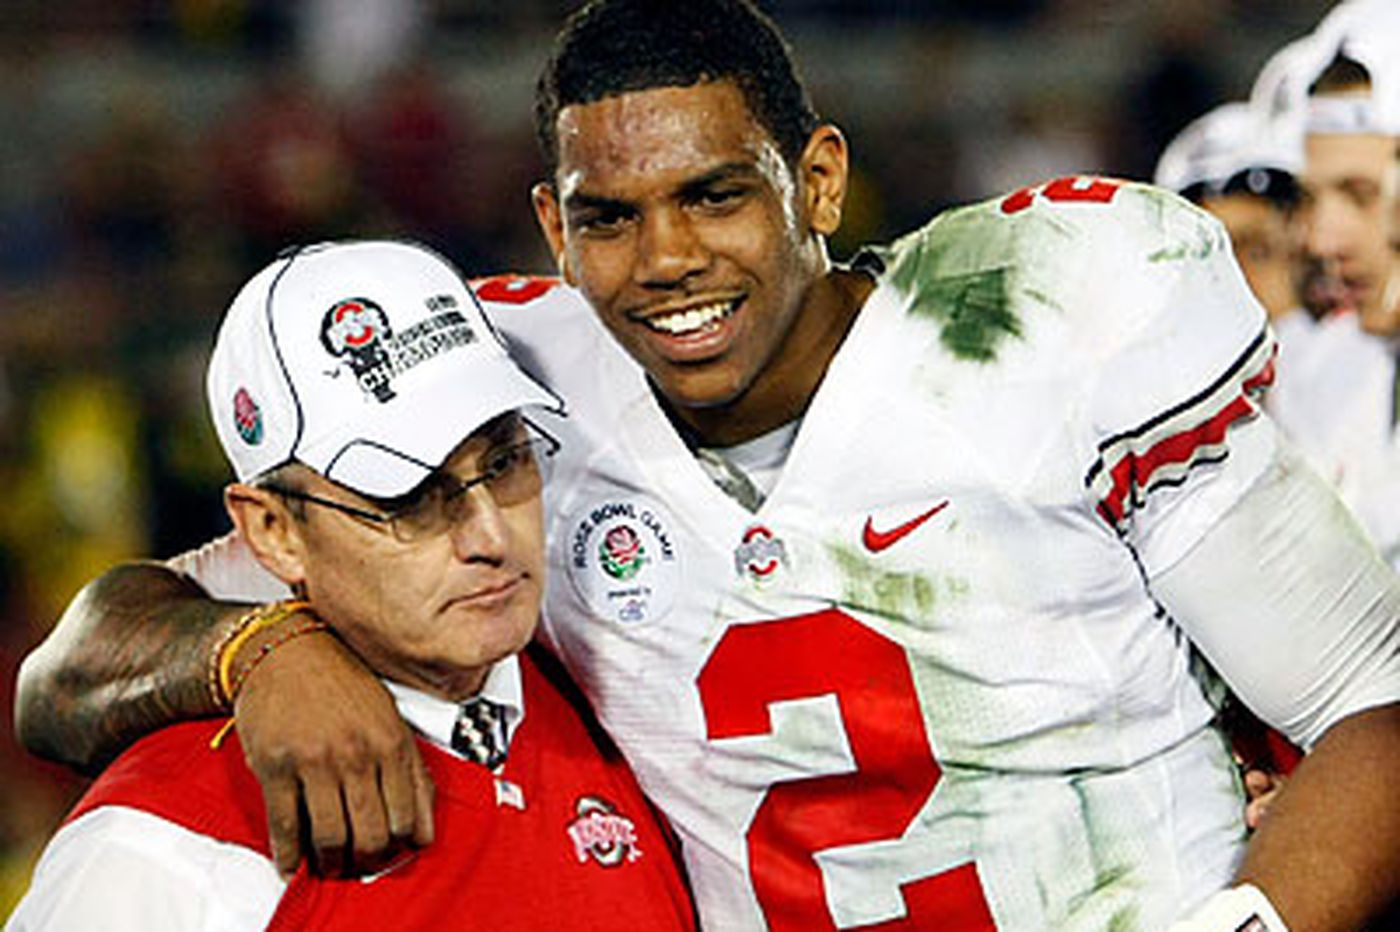 Pryor not returning to Ohio State, eyes NFL